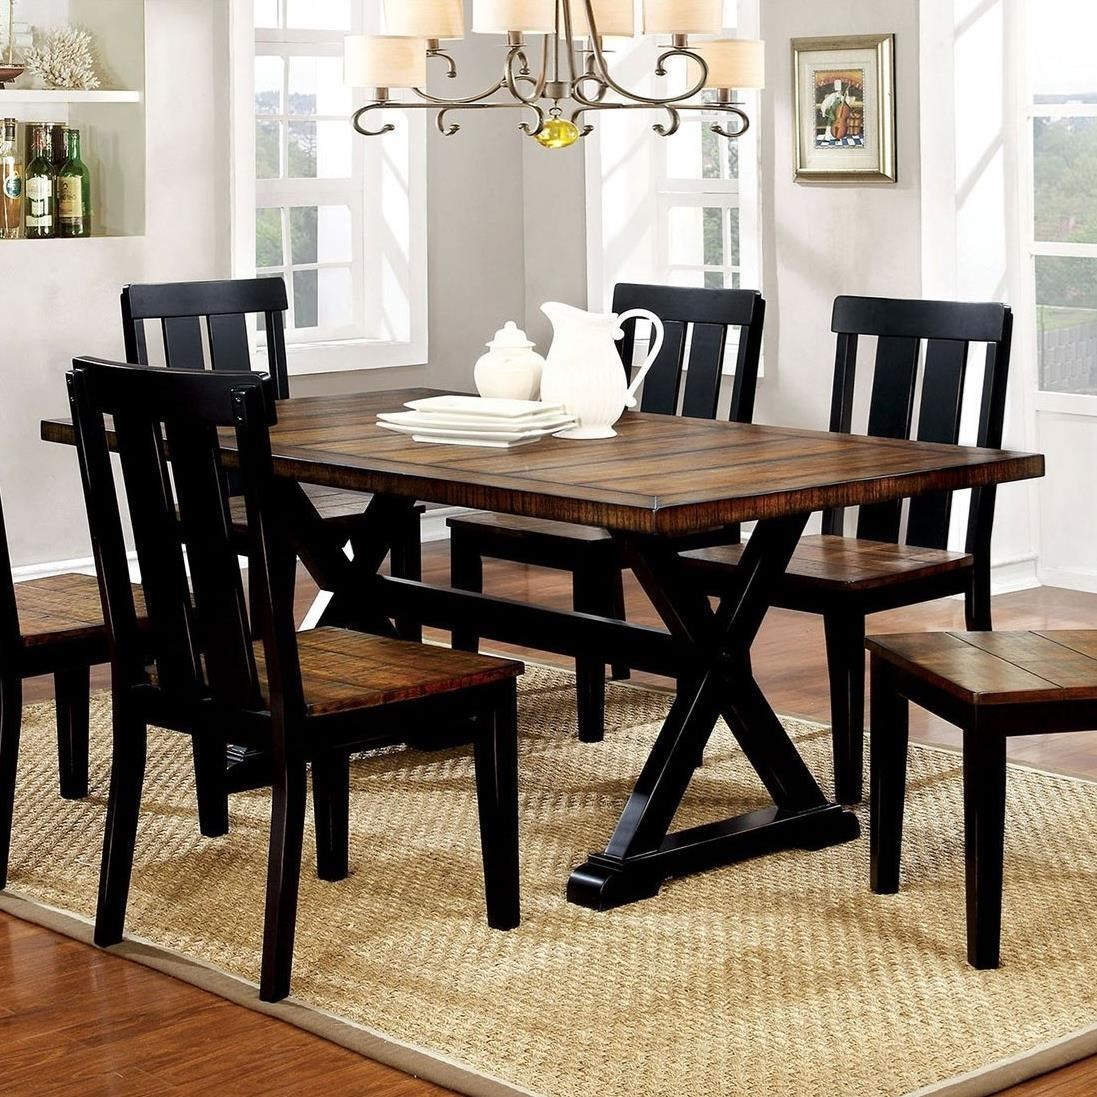 Furniture of America Alana Trestle Two-Tone Dining Table  sc 1 st  Rooms for Less & Furniture of America Alana Trestle Two-Tone Dining Table | Rooms for ...